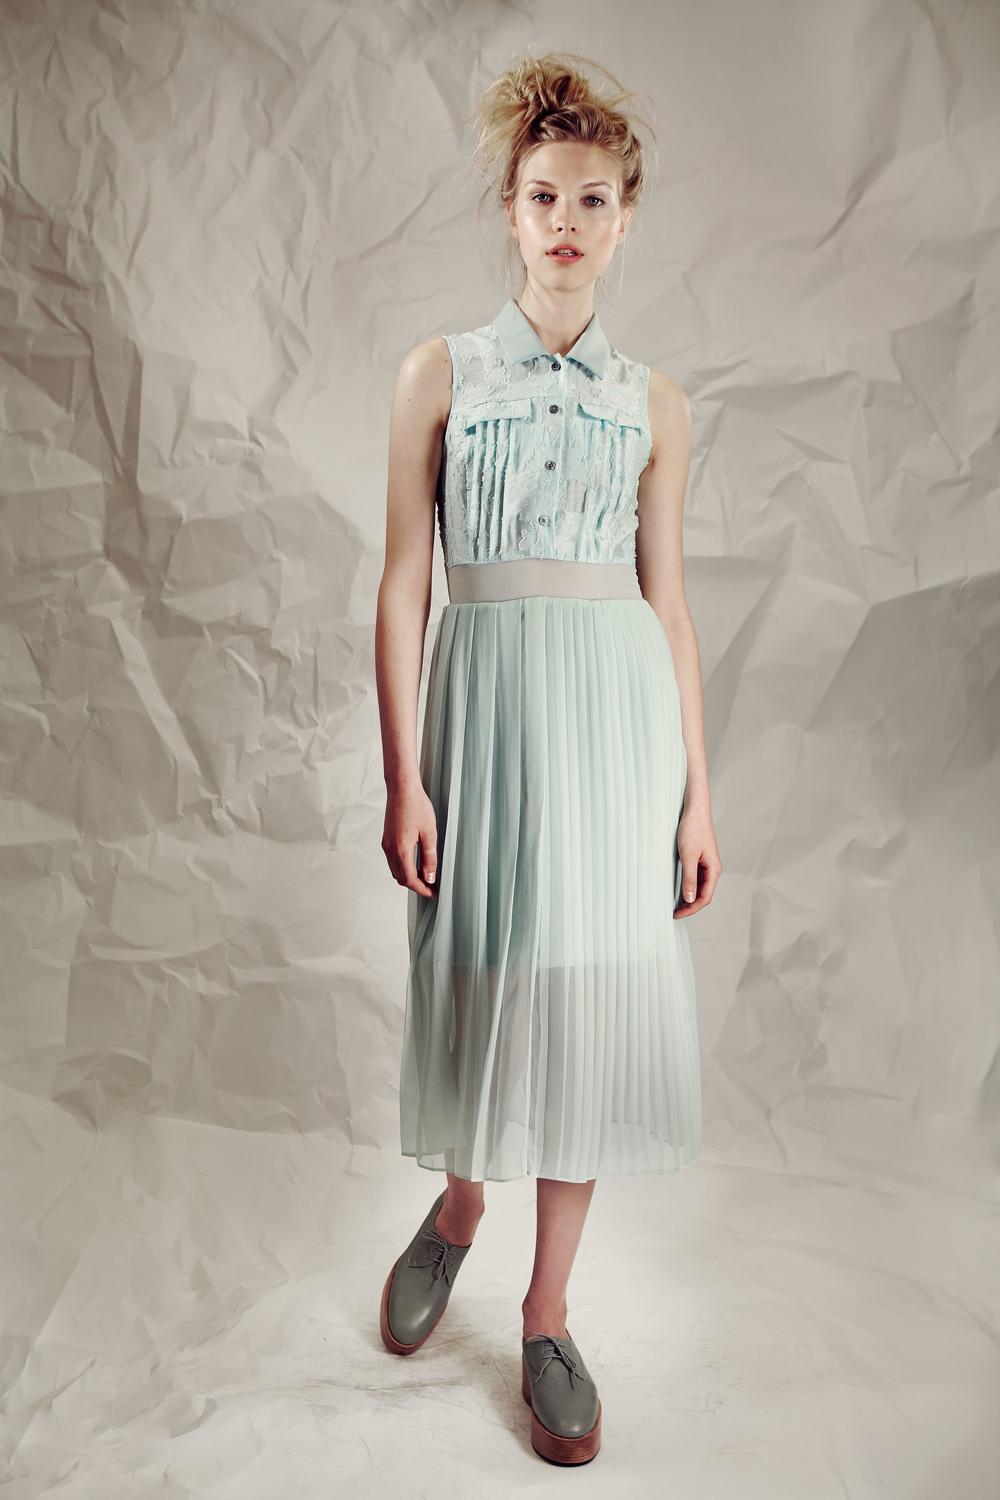 TIMO WEILAND RESORT 15 LOOK 14.jpg